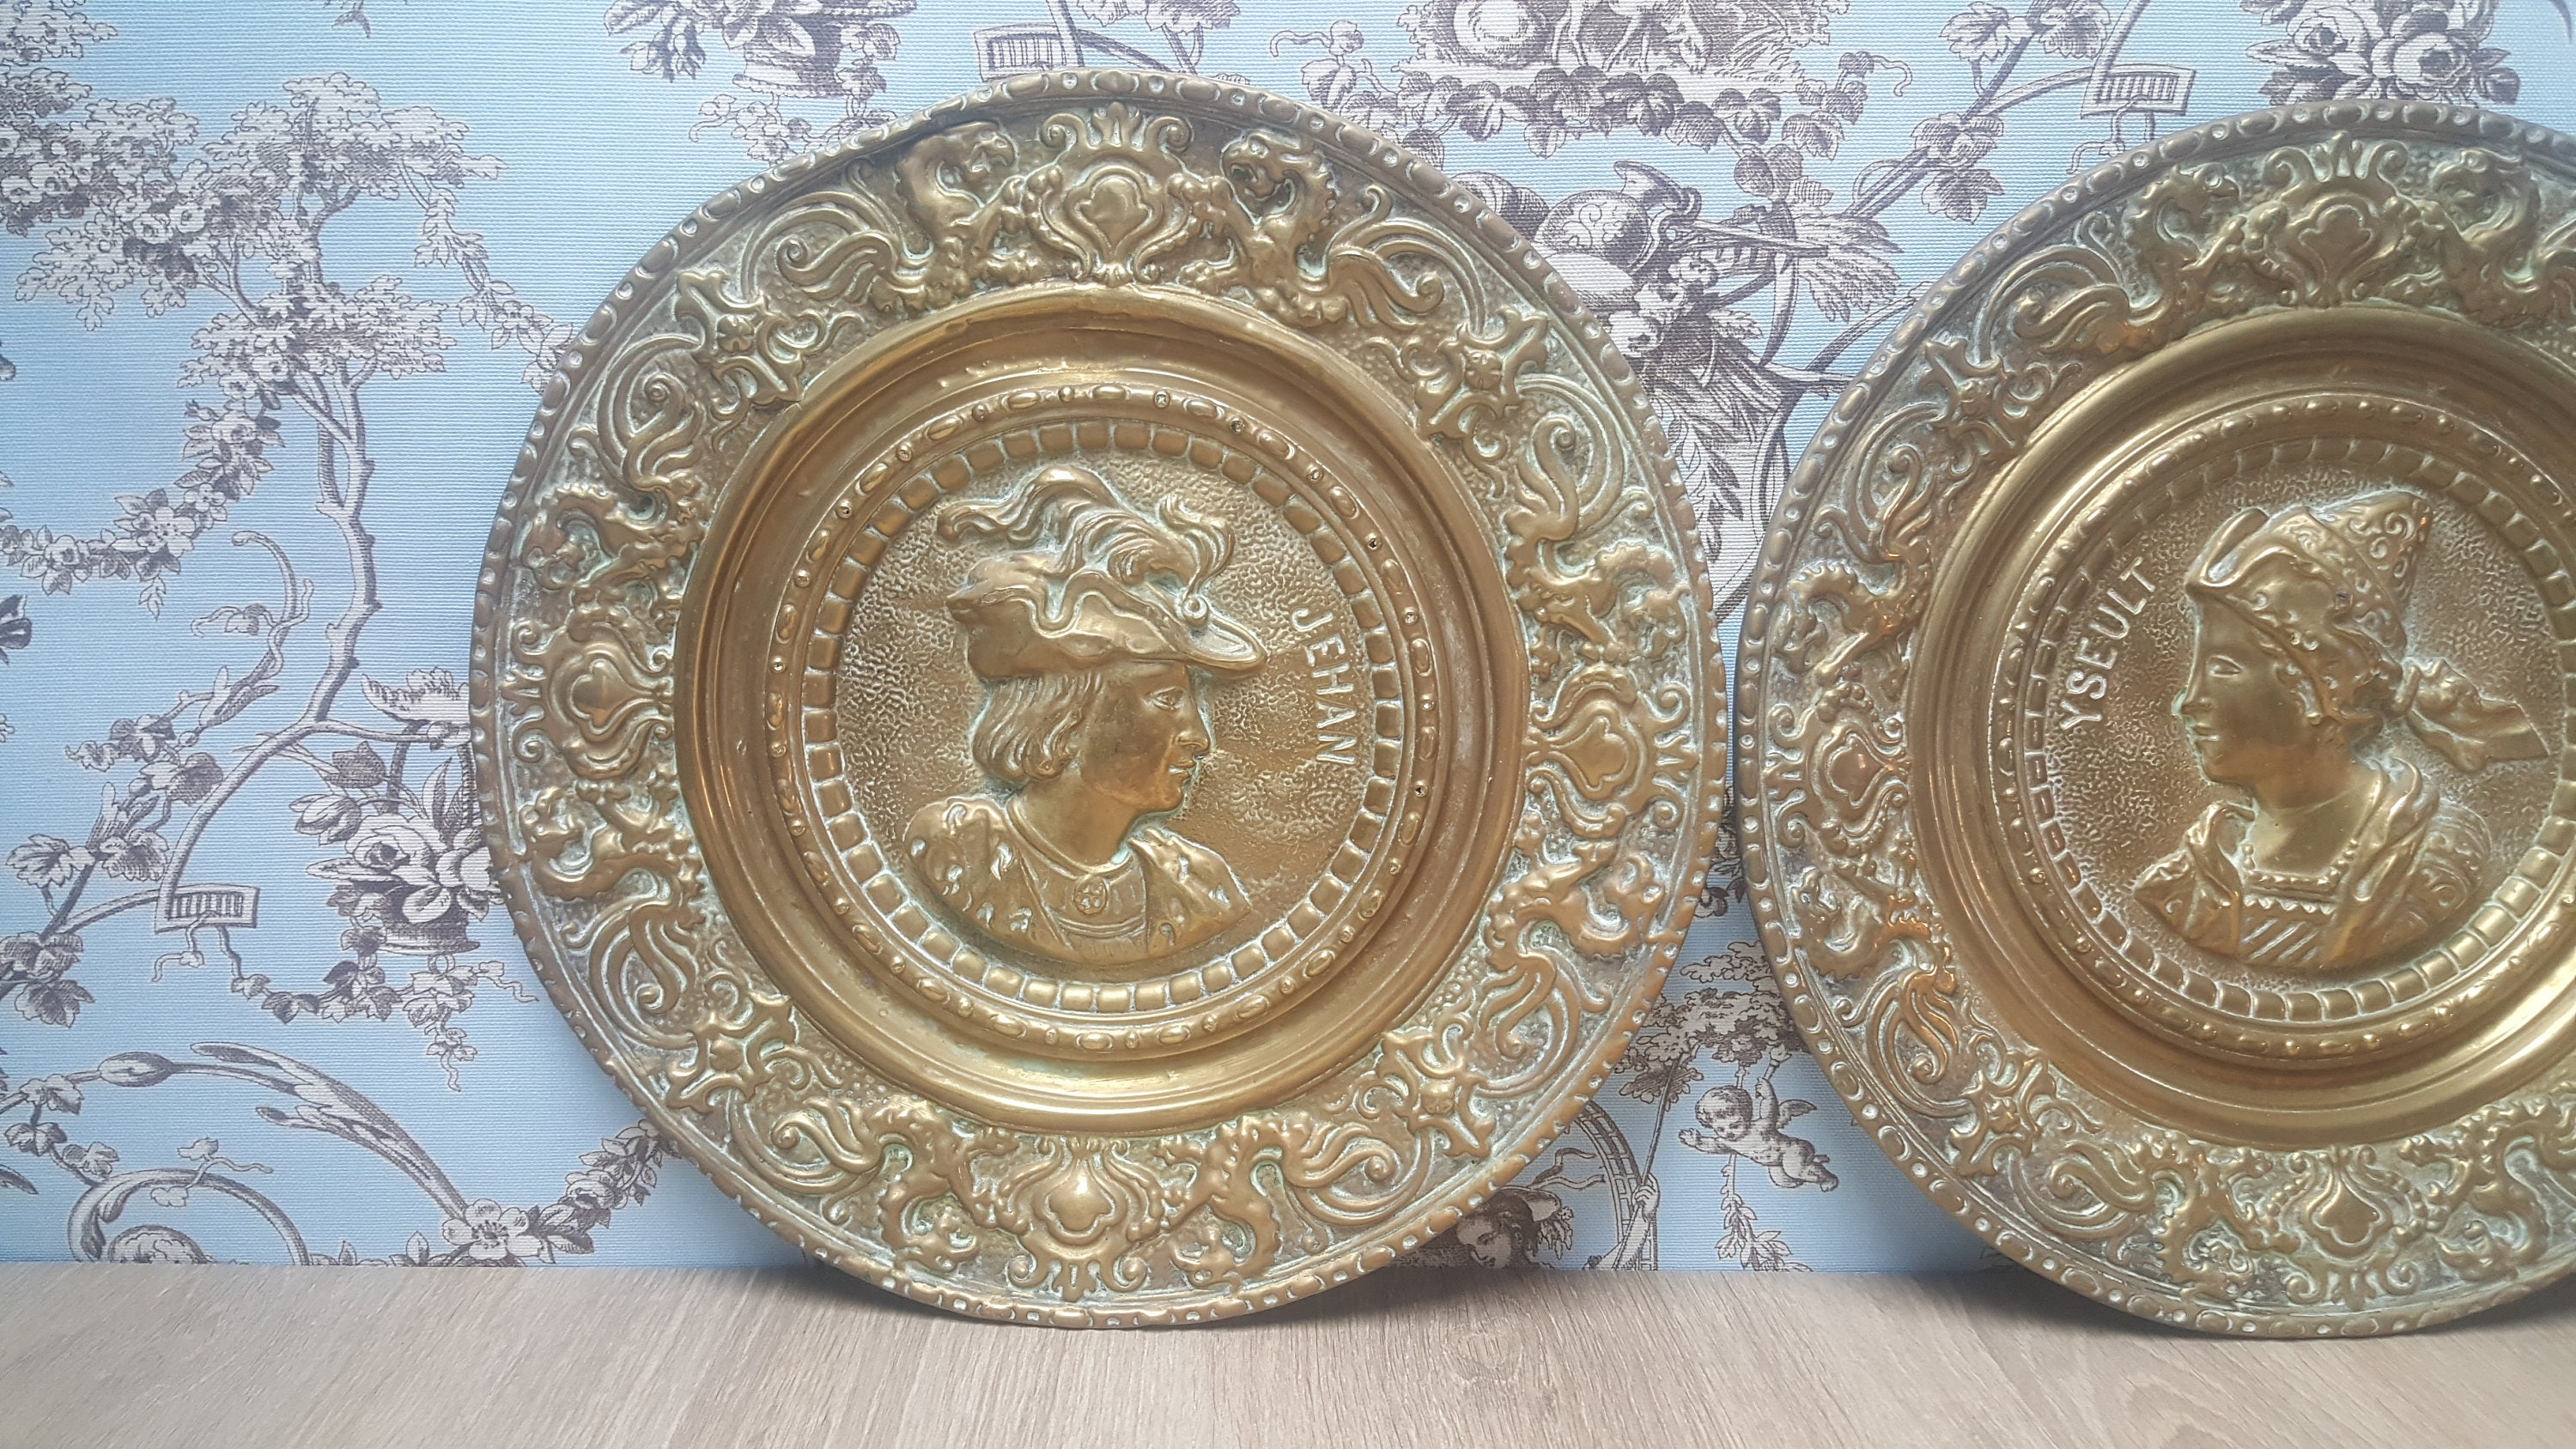 Pair of french antique brass repousse decorative plates jehan yseult early 1880 & Pair of french antique brass repousse decorative plates jehan yseult ...